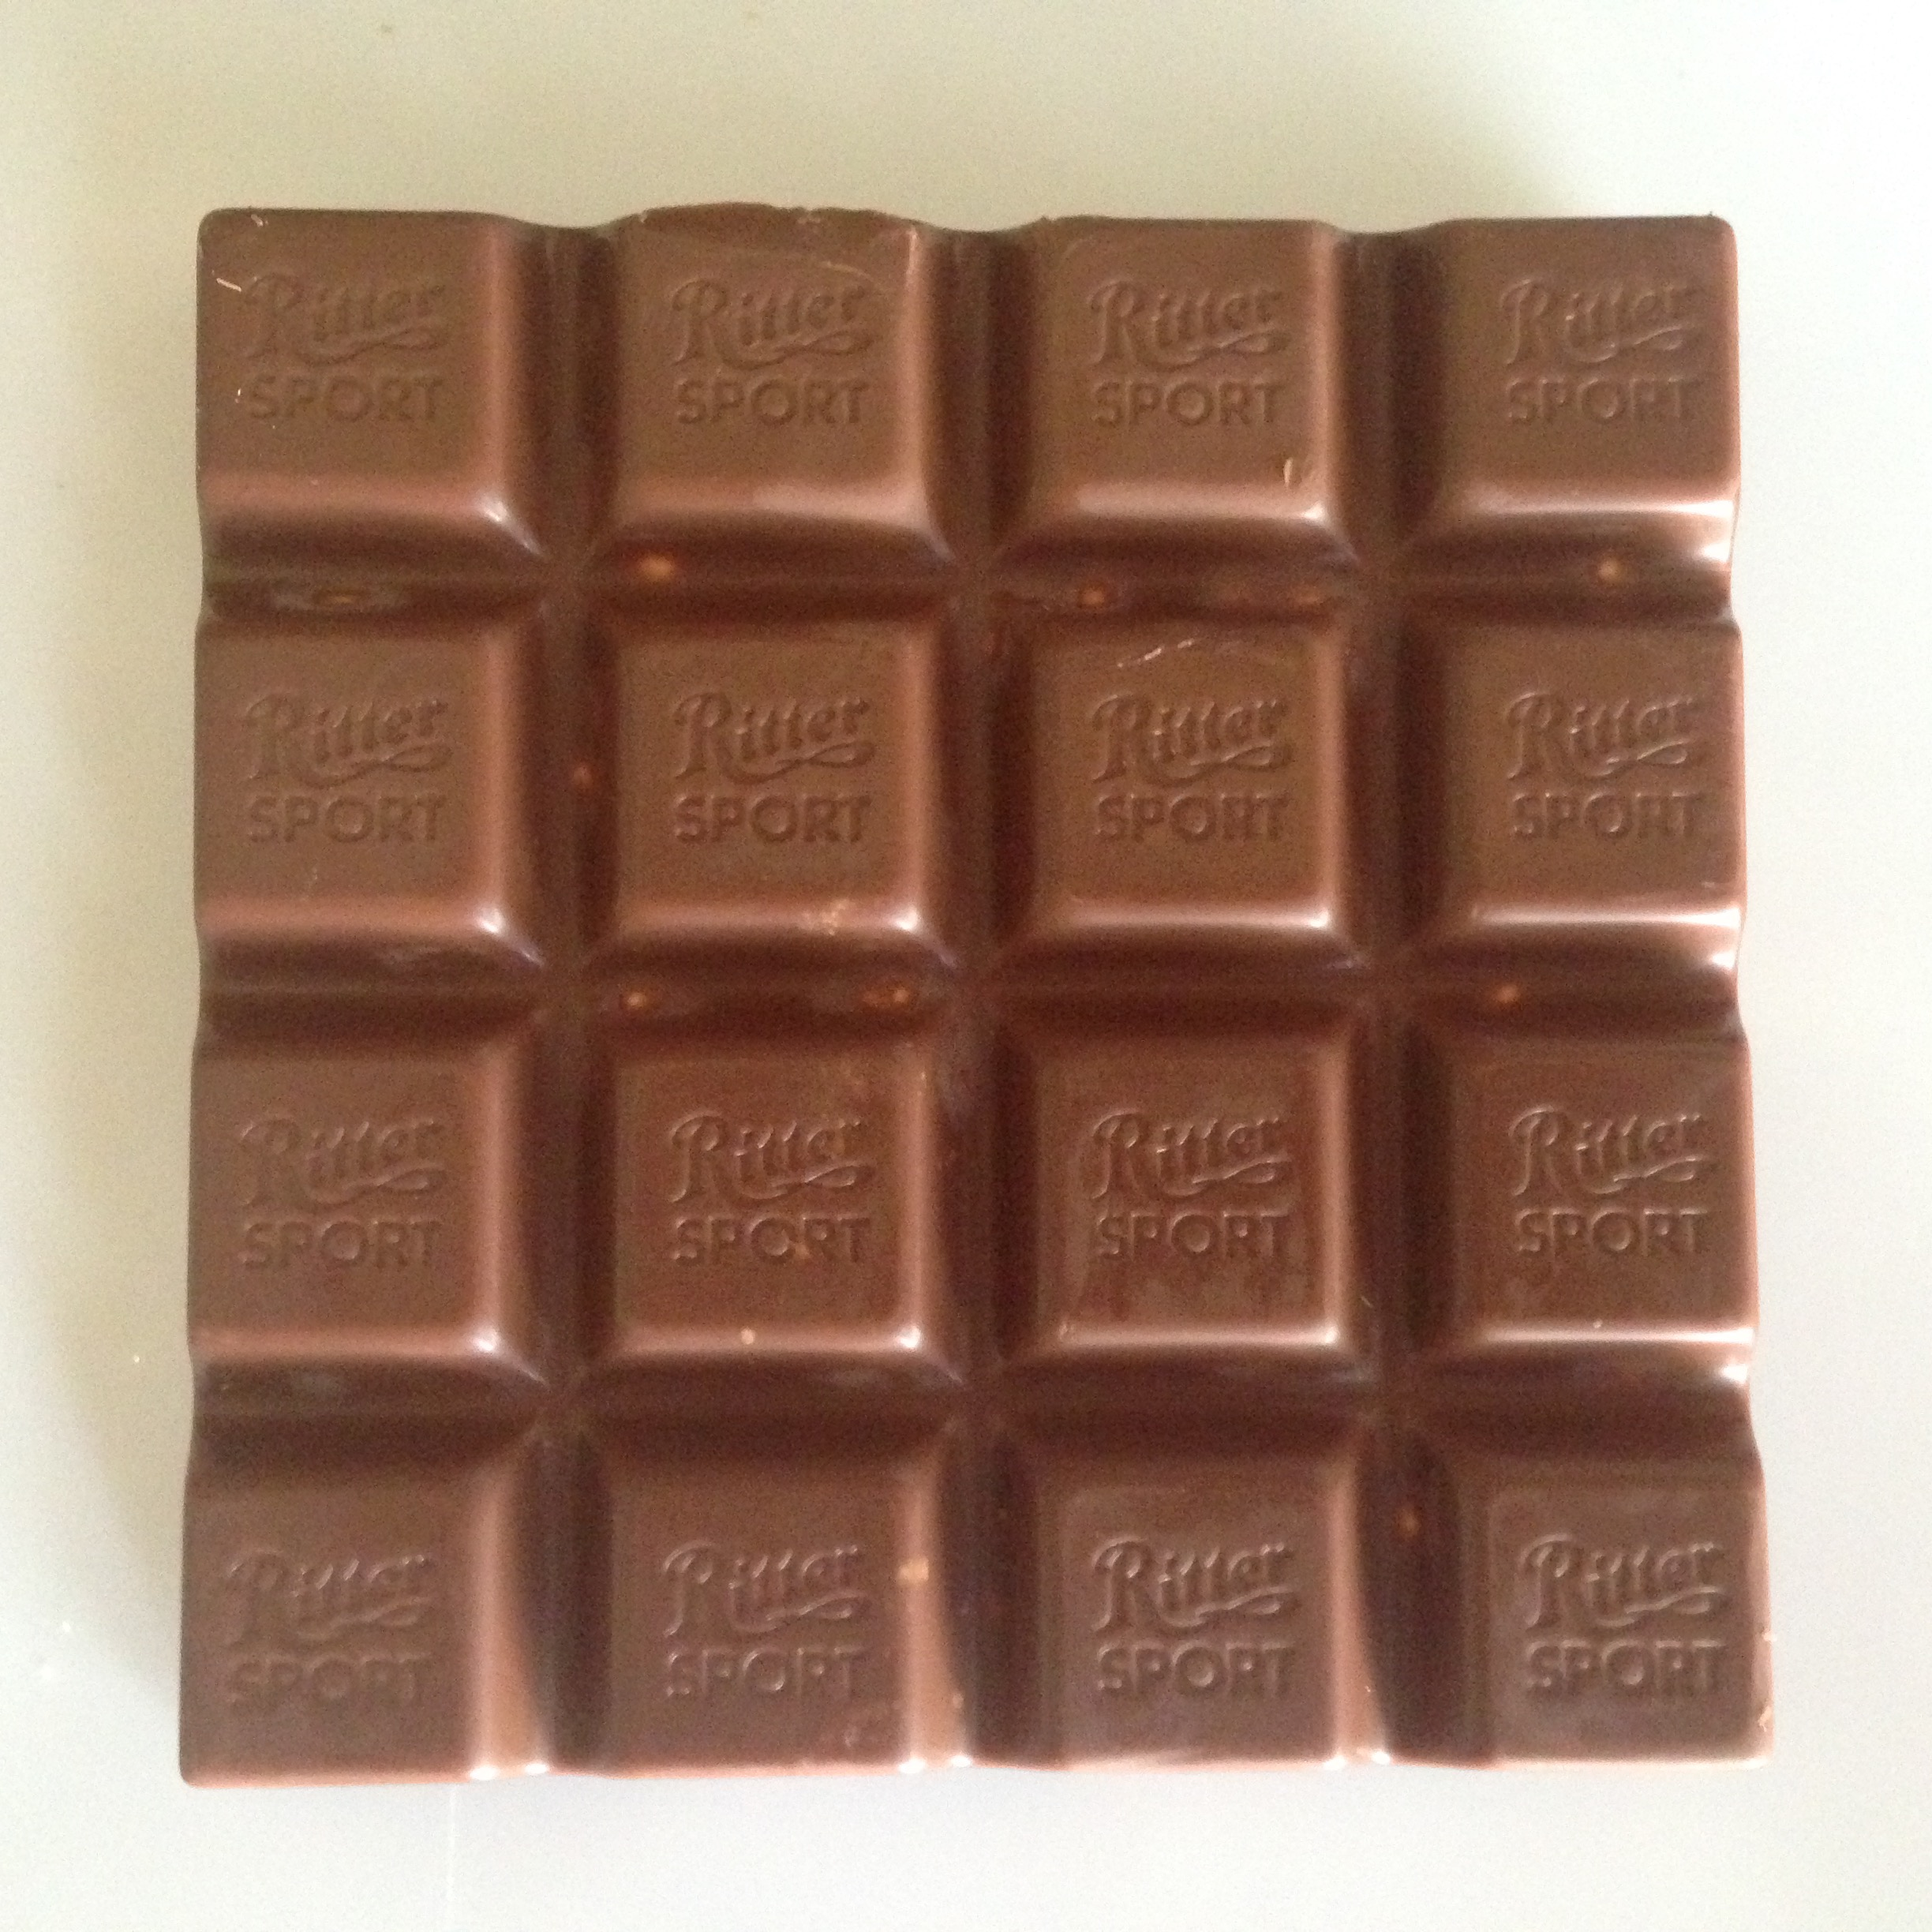 Ritter Sport - Time To Eat Chocolate